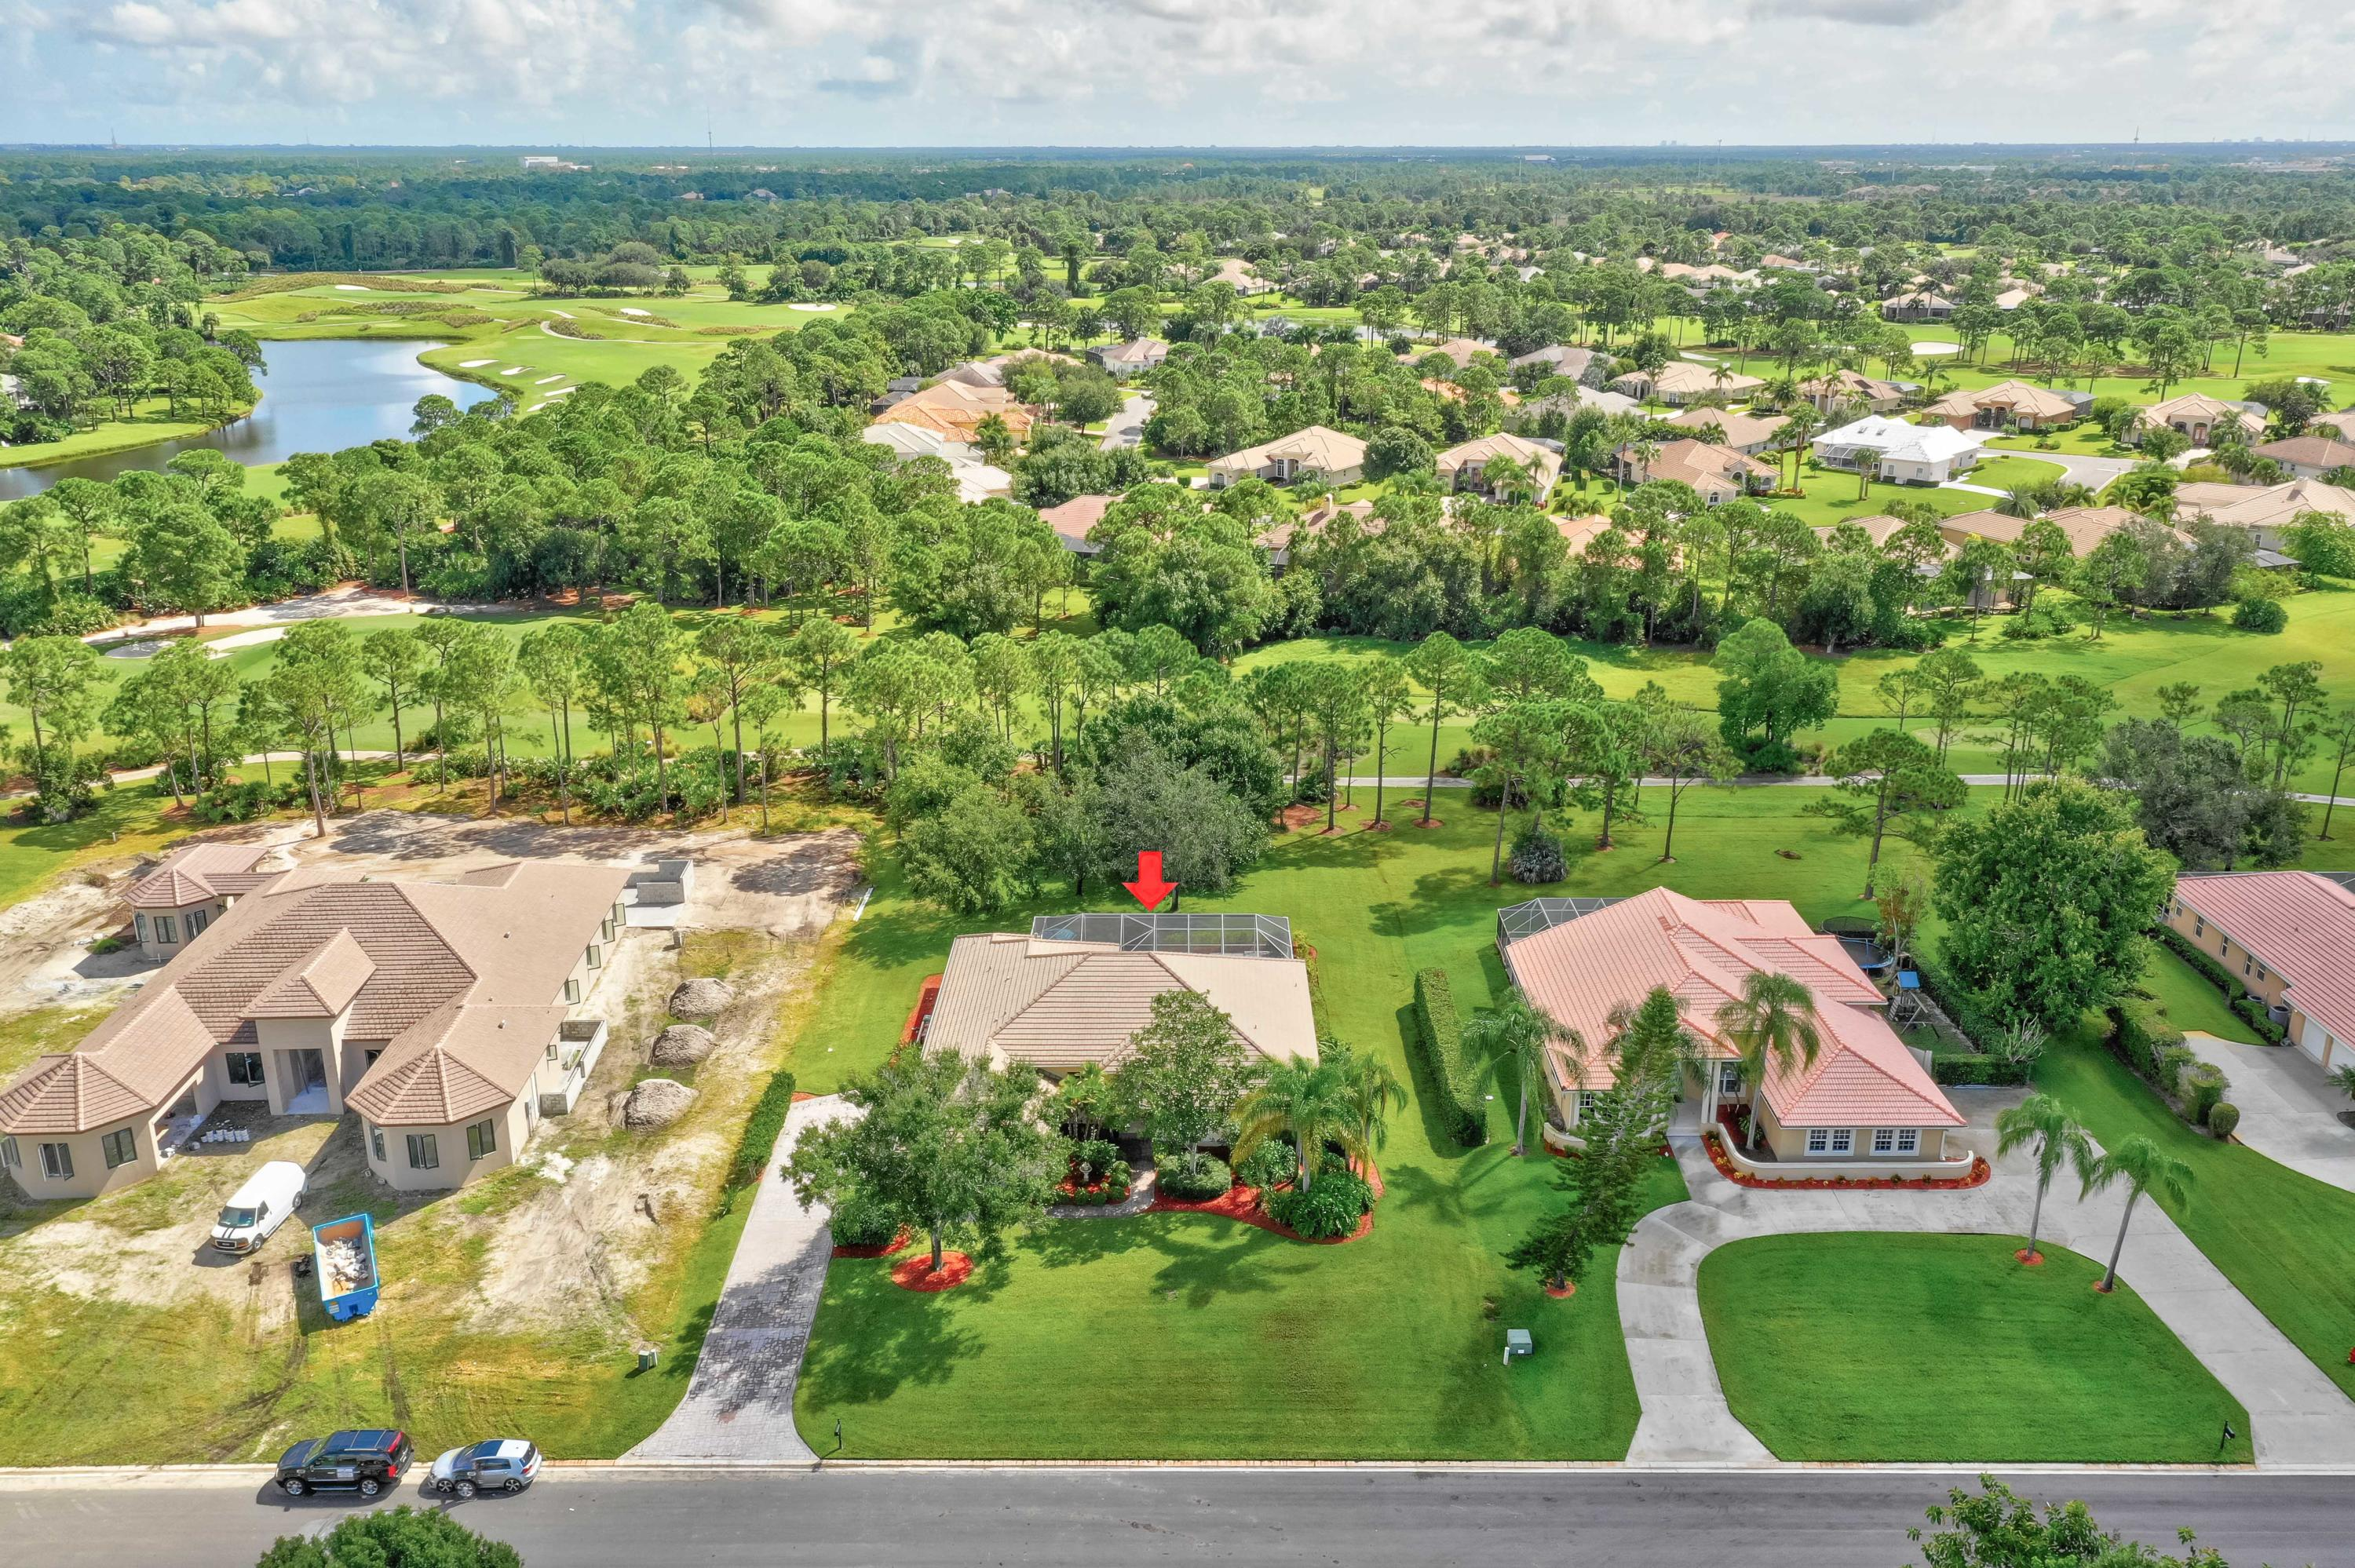 PGA VILLAGE PORT SAINT LUCIE REAL ESTATE